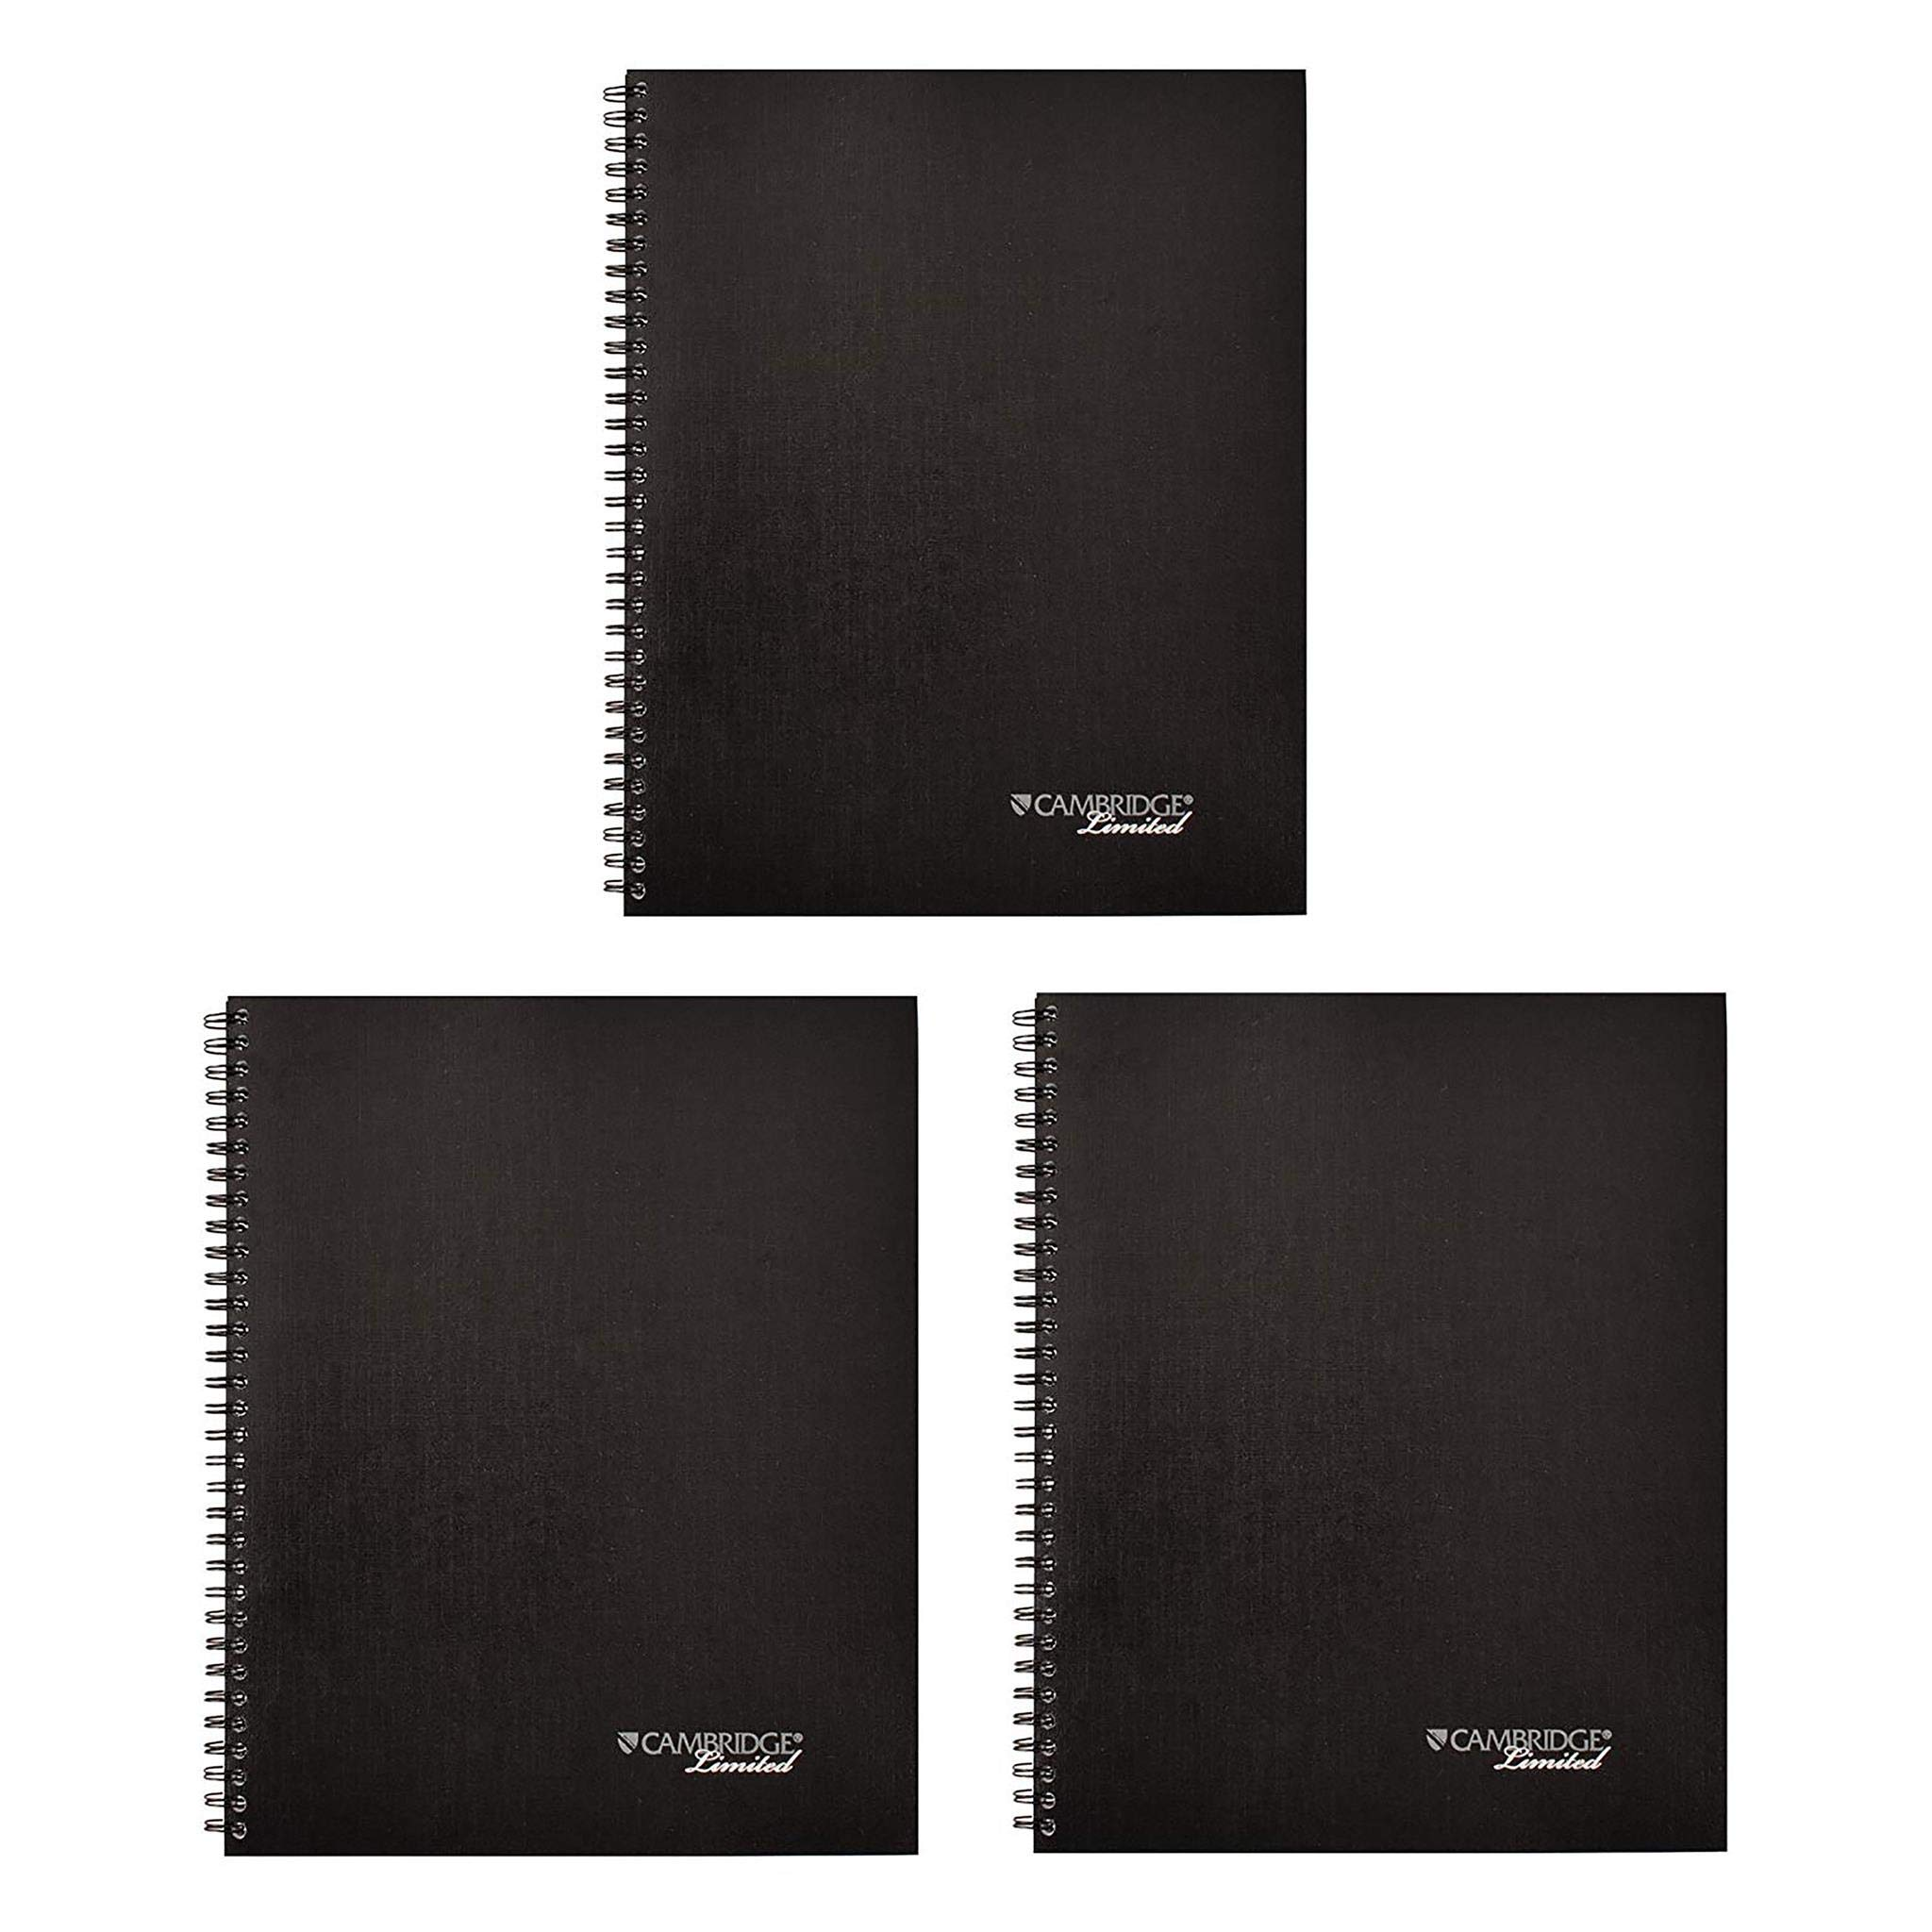 Cambridge Limited Meeting Planner, 11 x 8 1/4, 80 Sheets, Pack of 3 (06132)